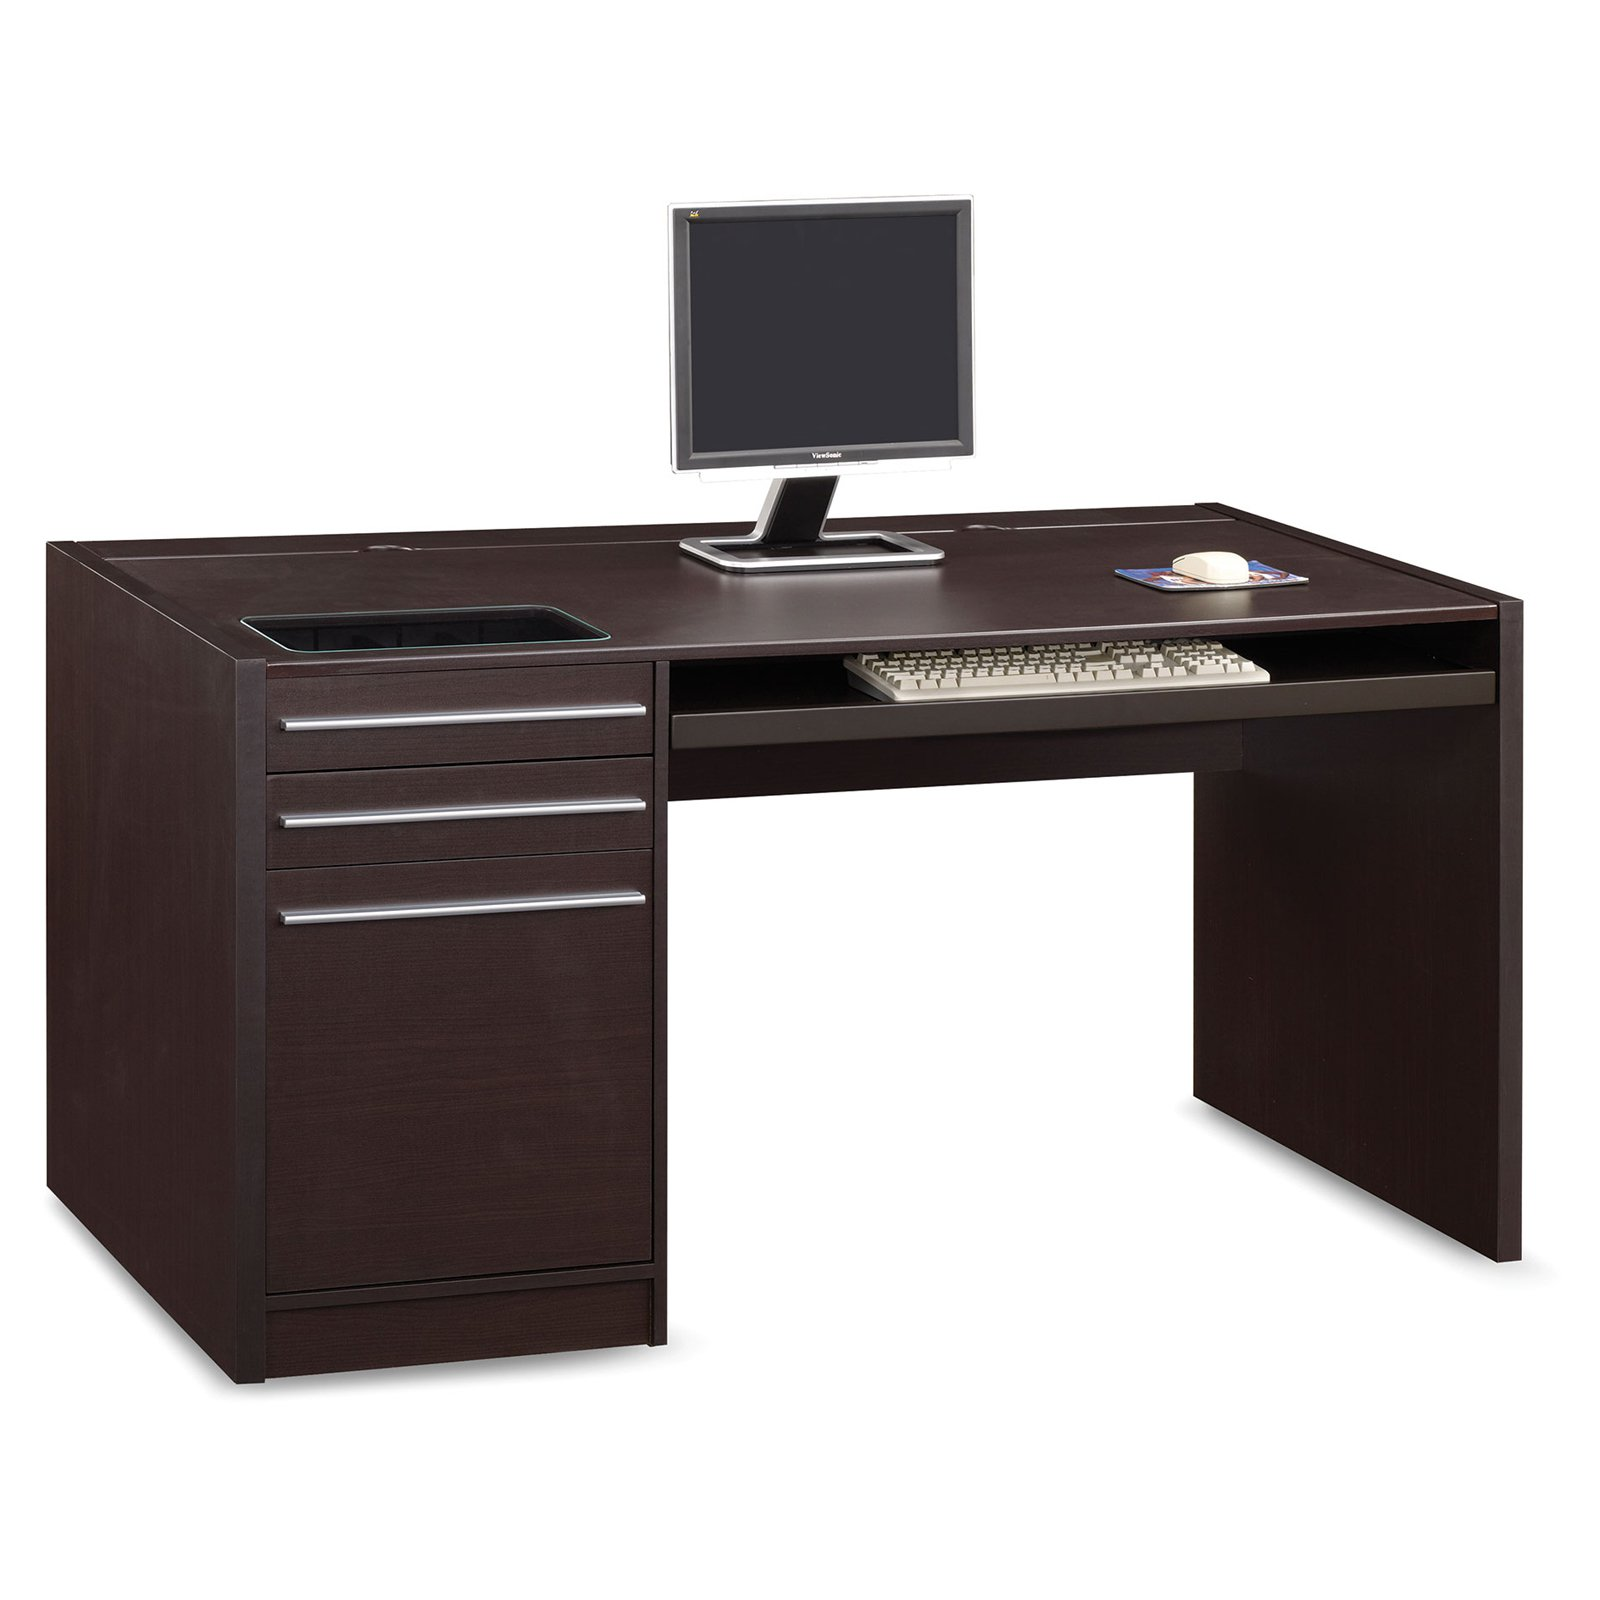 Coaster Furniture Cappuccino Computer Desk  Walmartcom